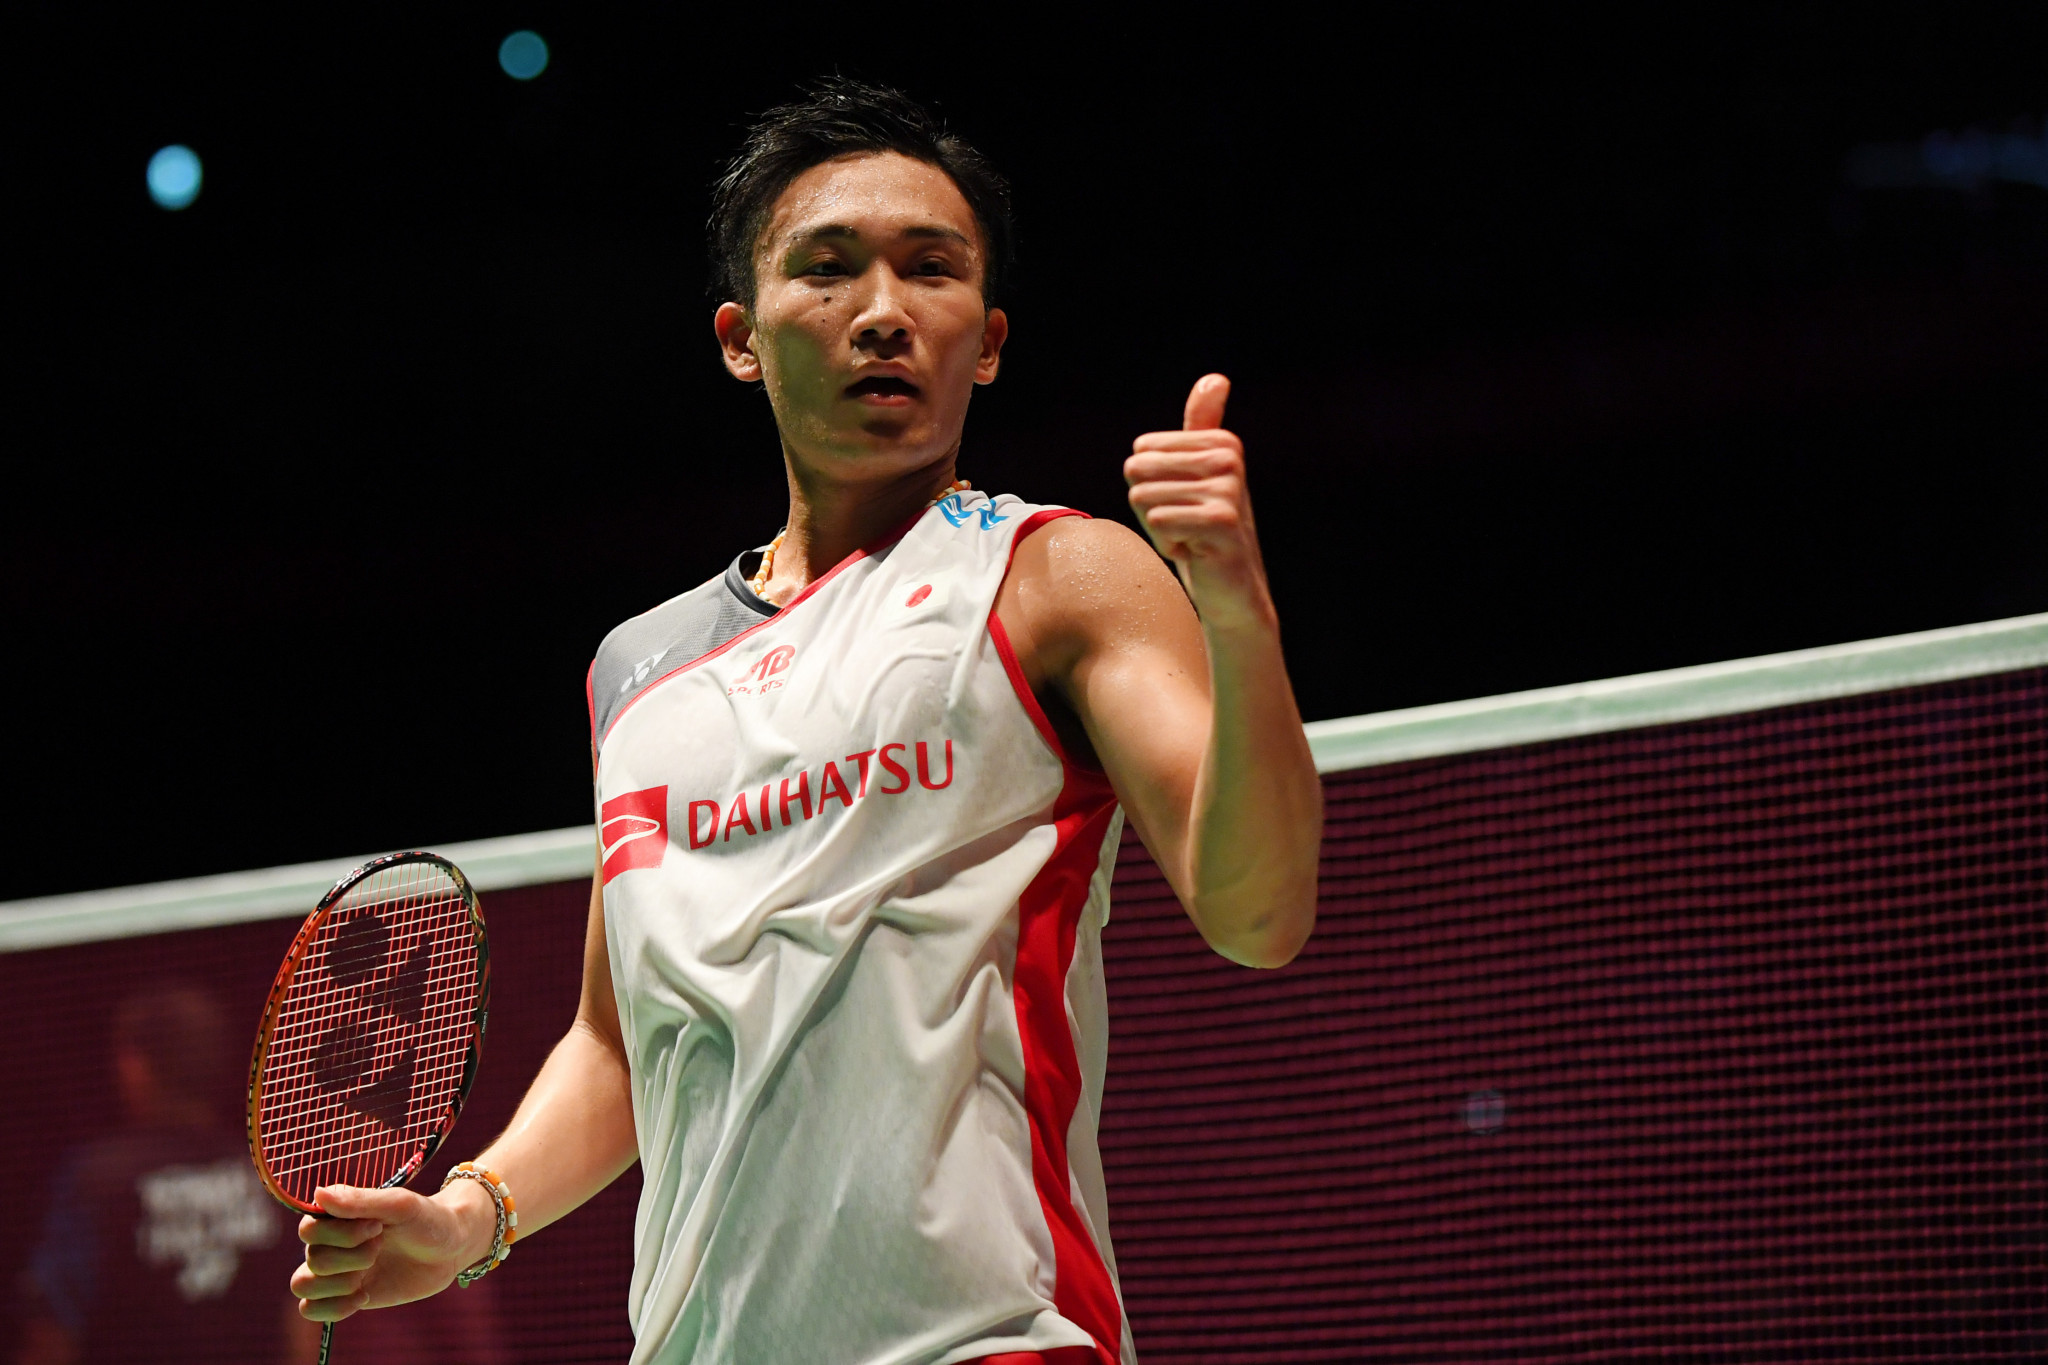 Momota is one of Japan's biggest hopes for a medal at their home Olympics, now scheduled for July and August 2021 ©Getty Images